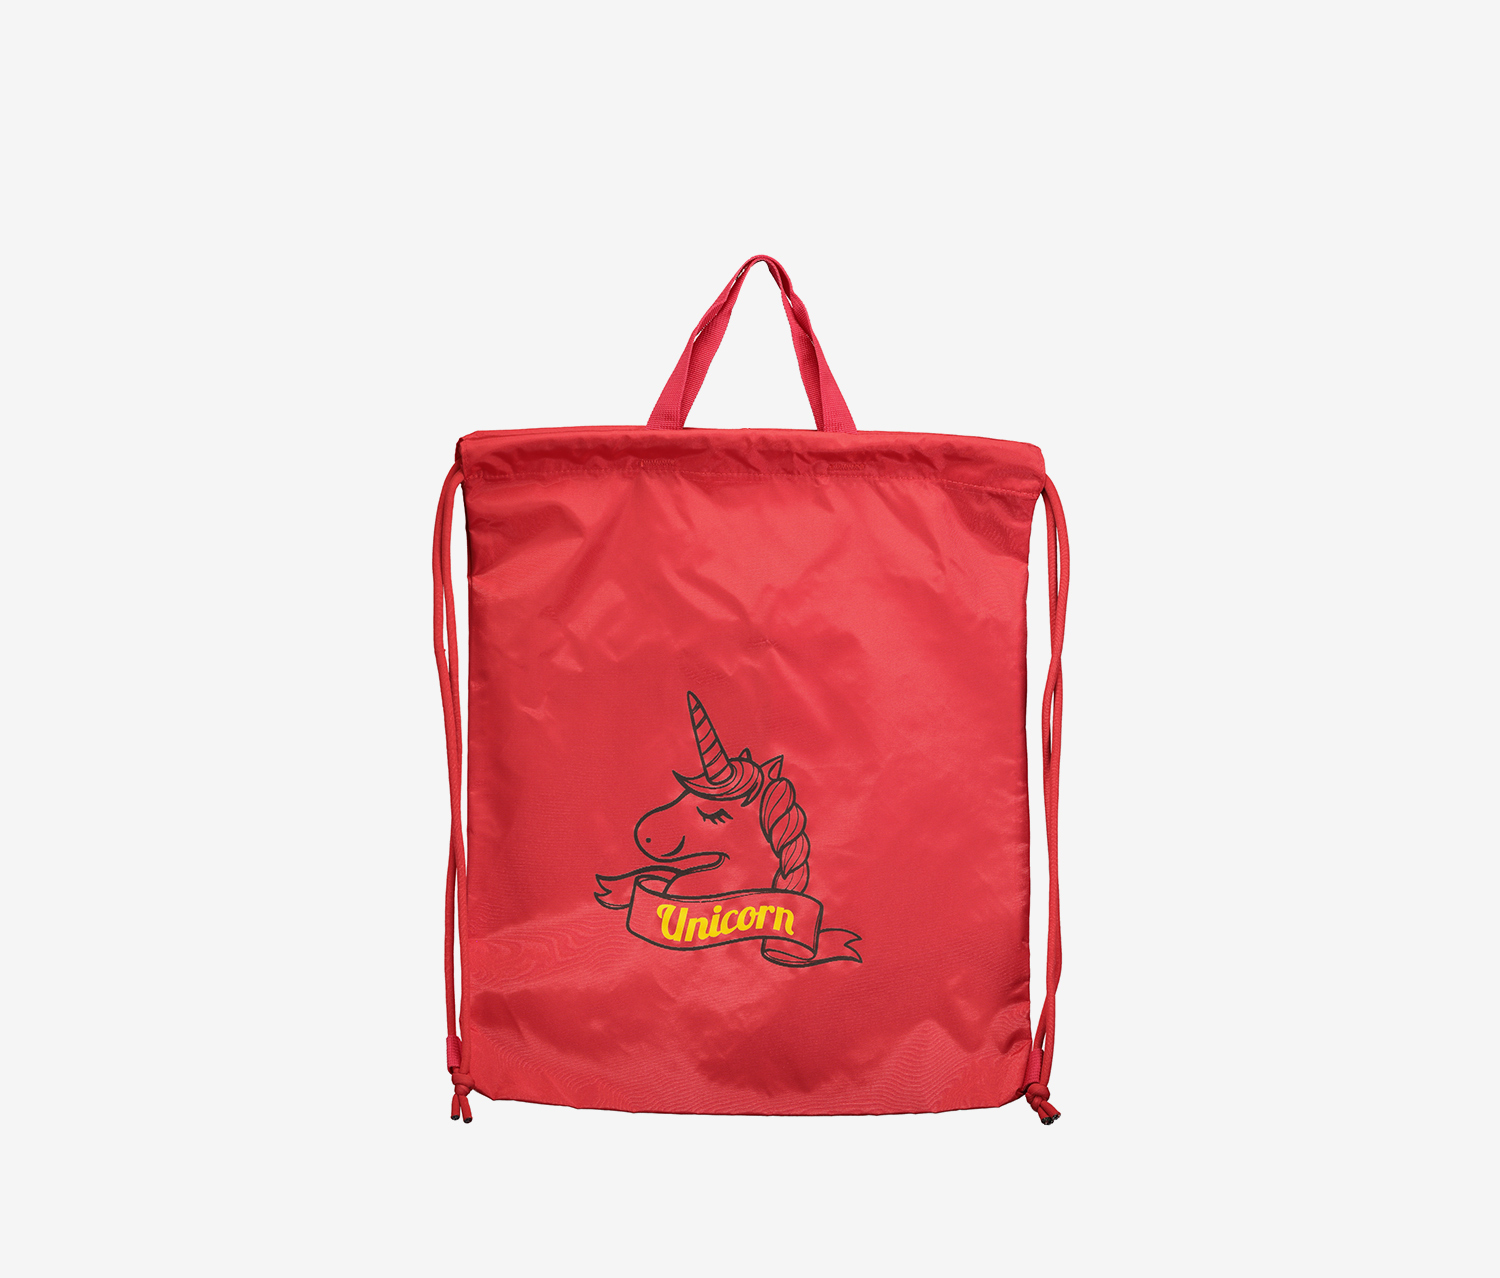 Unicorn Fatterned Drawstring Sports Bag, Red